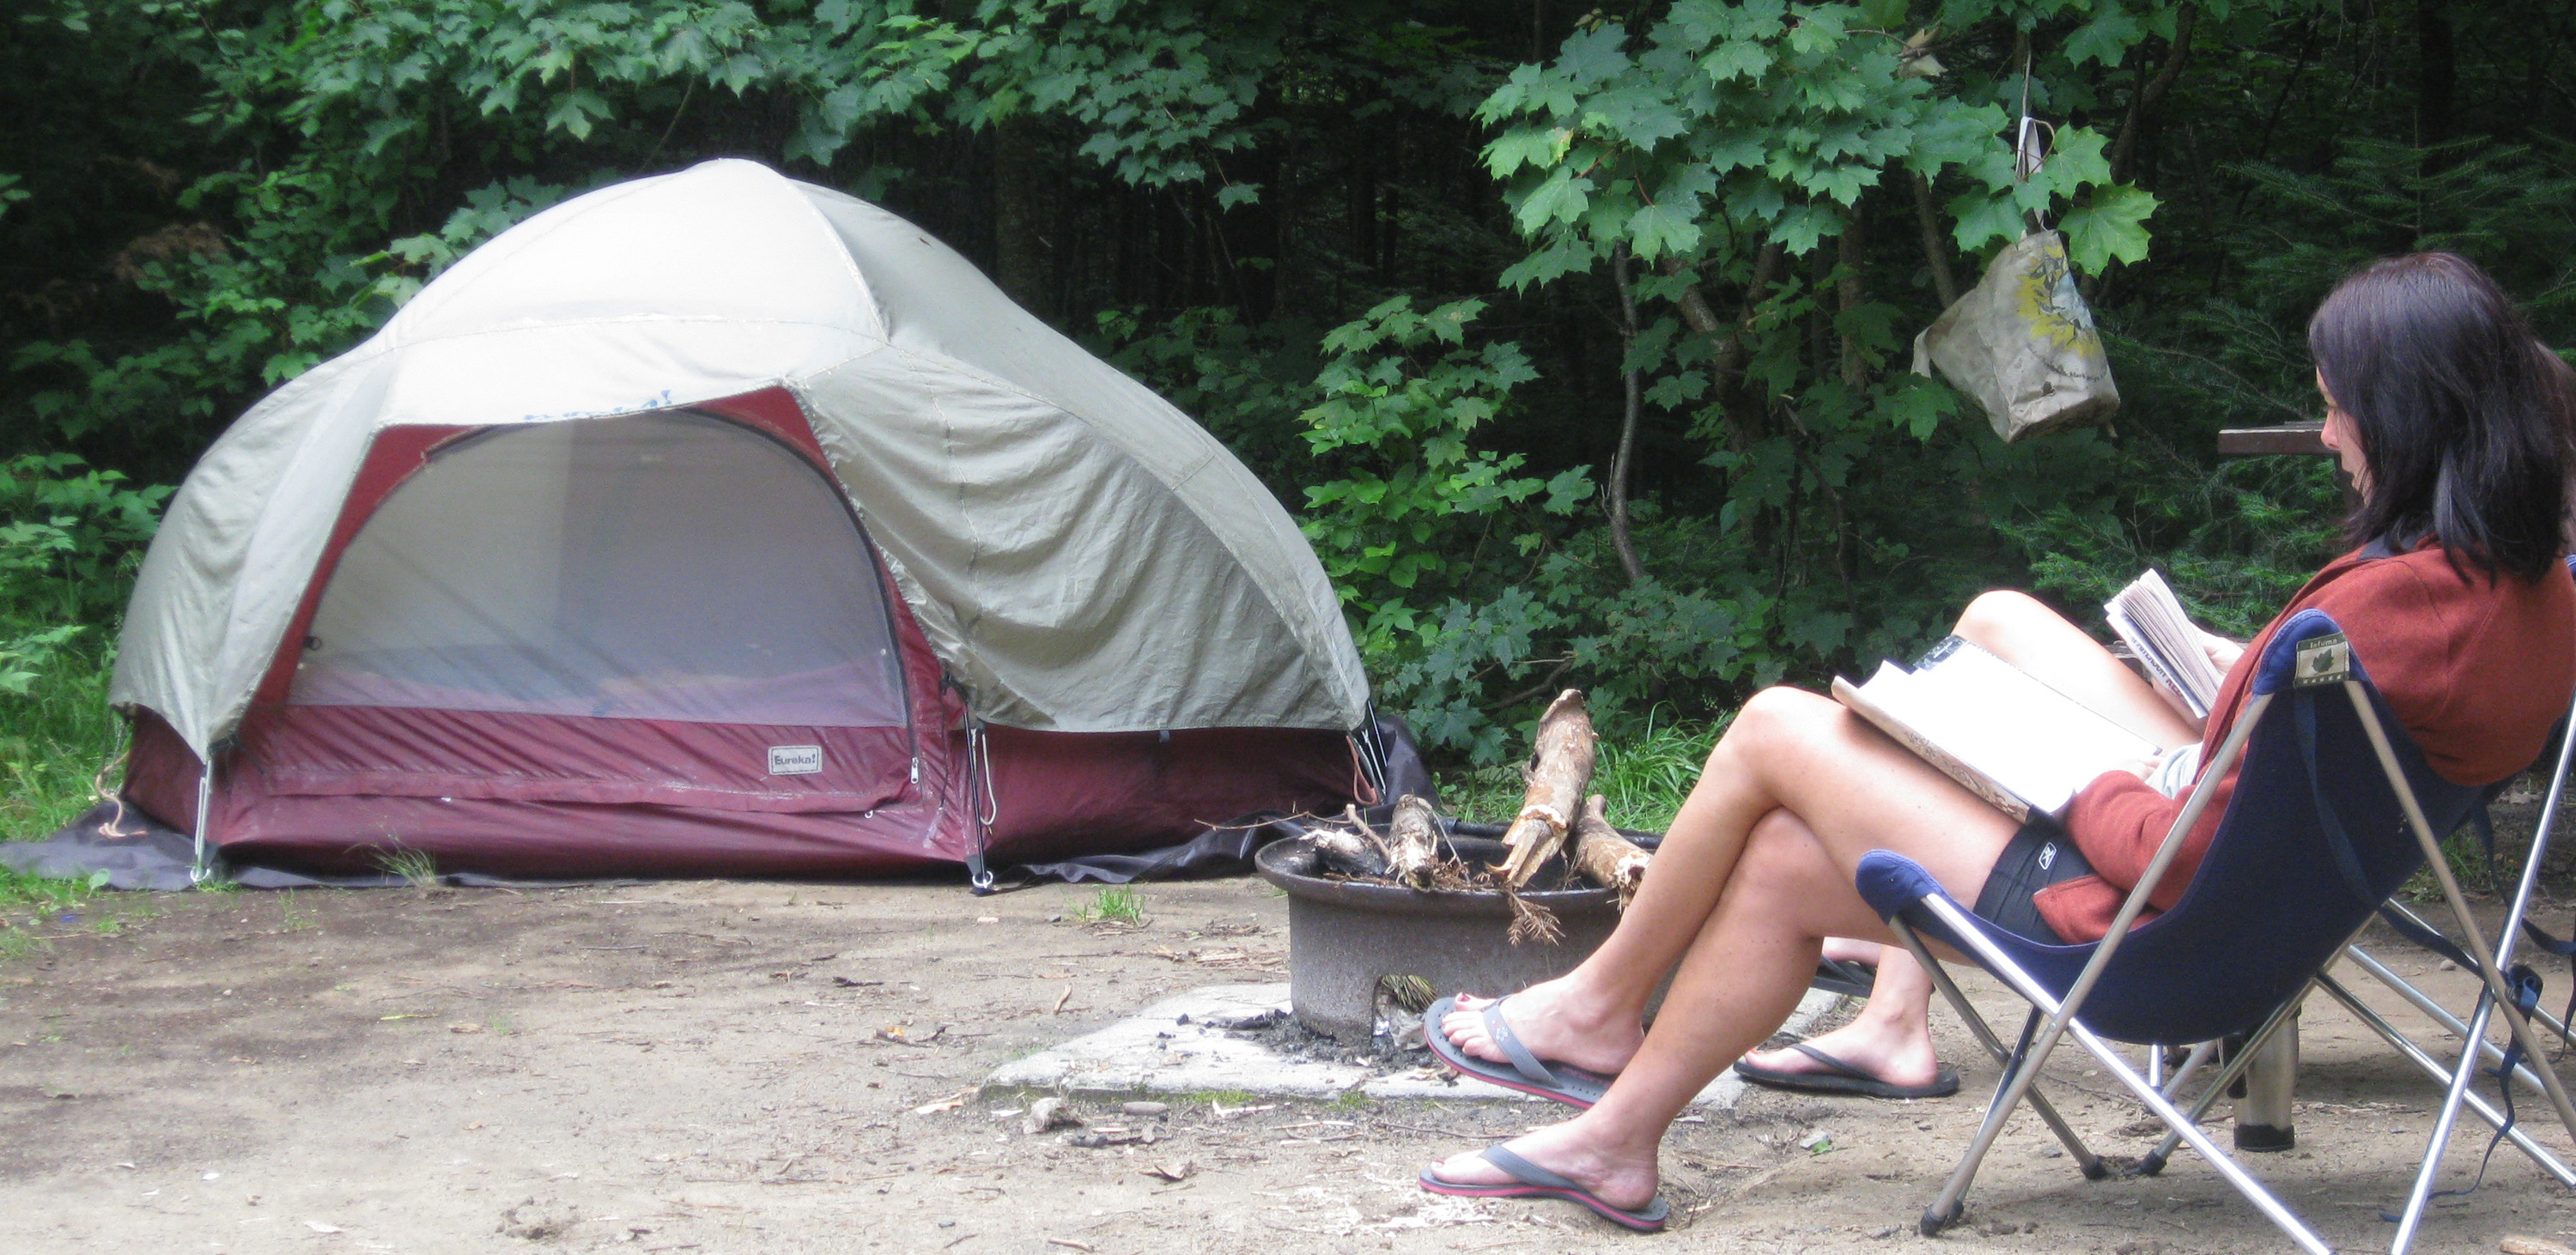 Wilderness C&ground at Heart Lake & Wilderness Campground at Heart Lake New York | Adirondack Mountain ...